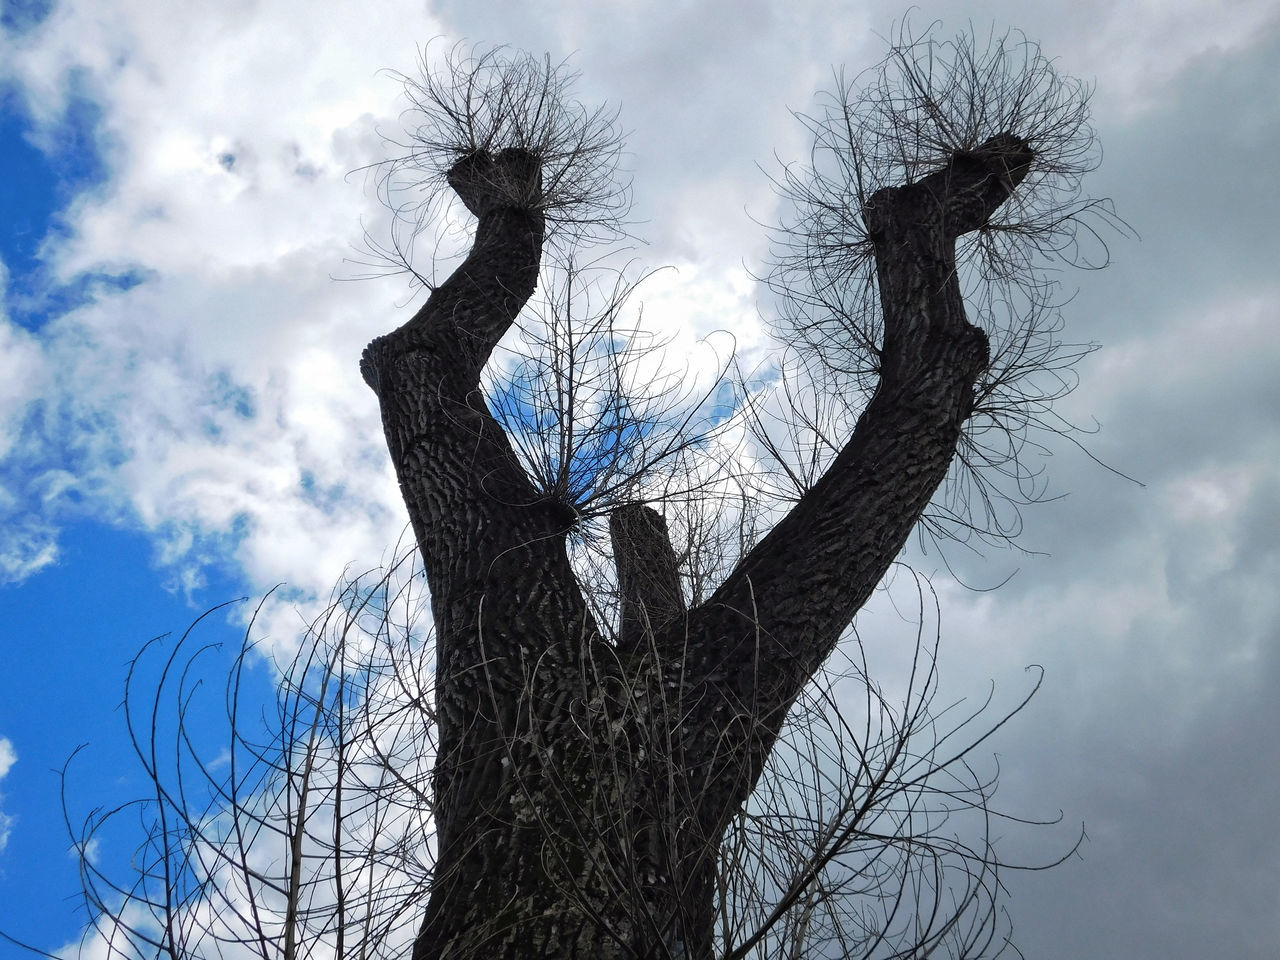 Bare Tree Beauty In Nature Branch Cloud - Sky Day Dead Tree Hairy  Low Angle View Monster Nature No People Outdoors Sky Snag Strange Tree Tree Trunk Y